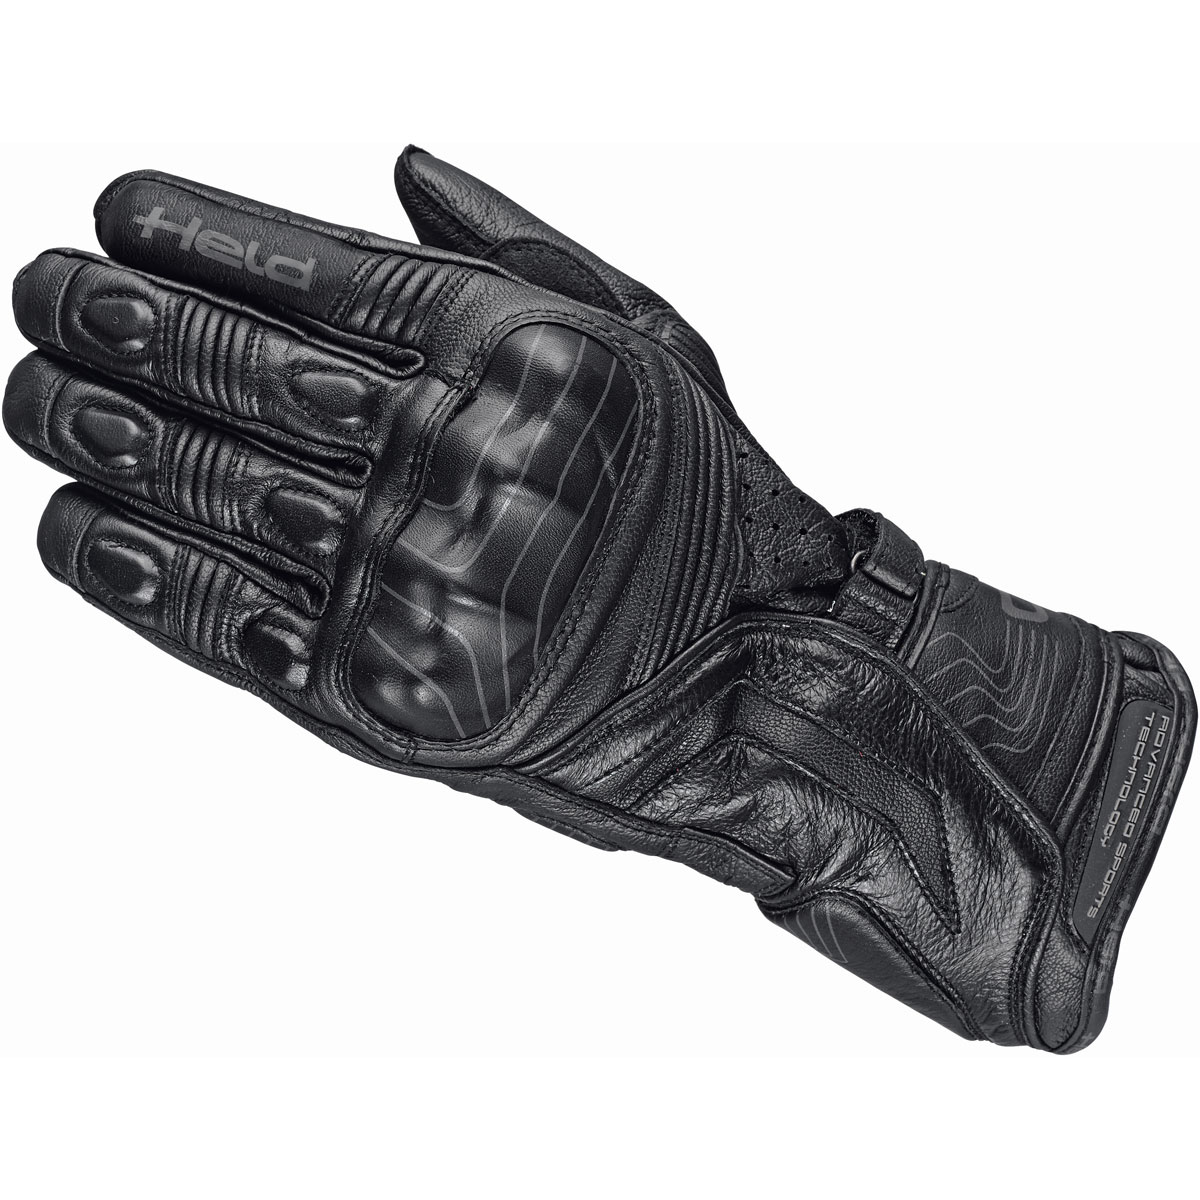 The Held 2616 Tour Guide Gloves